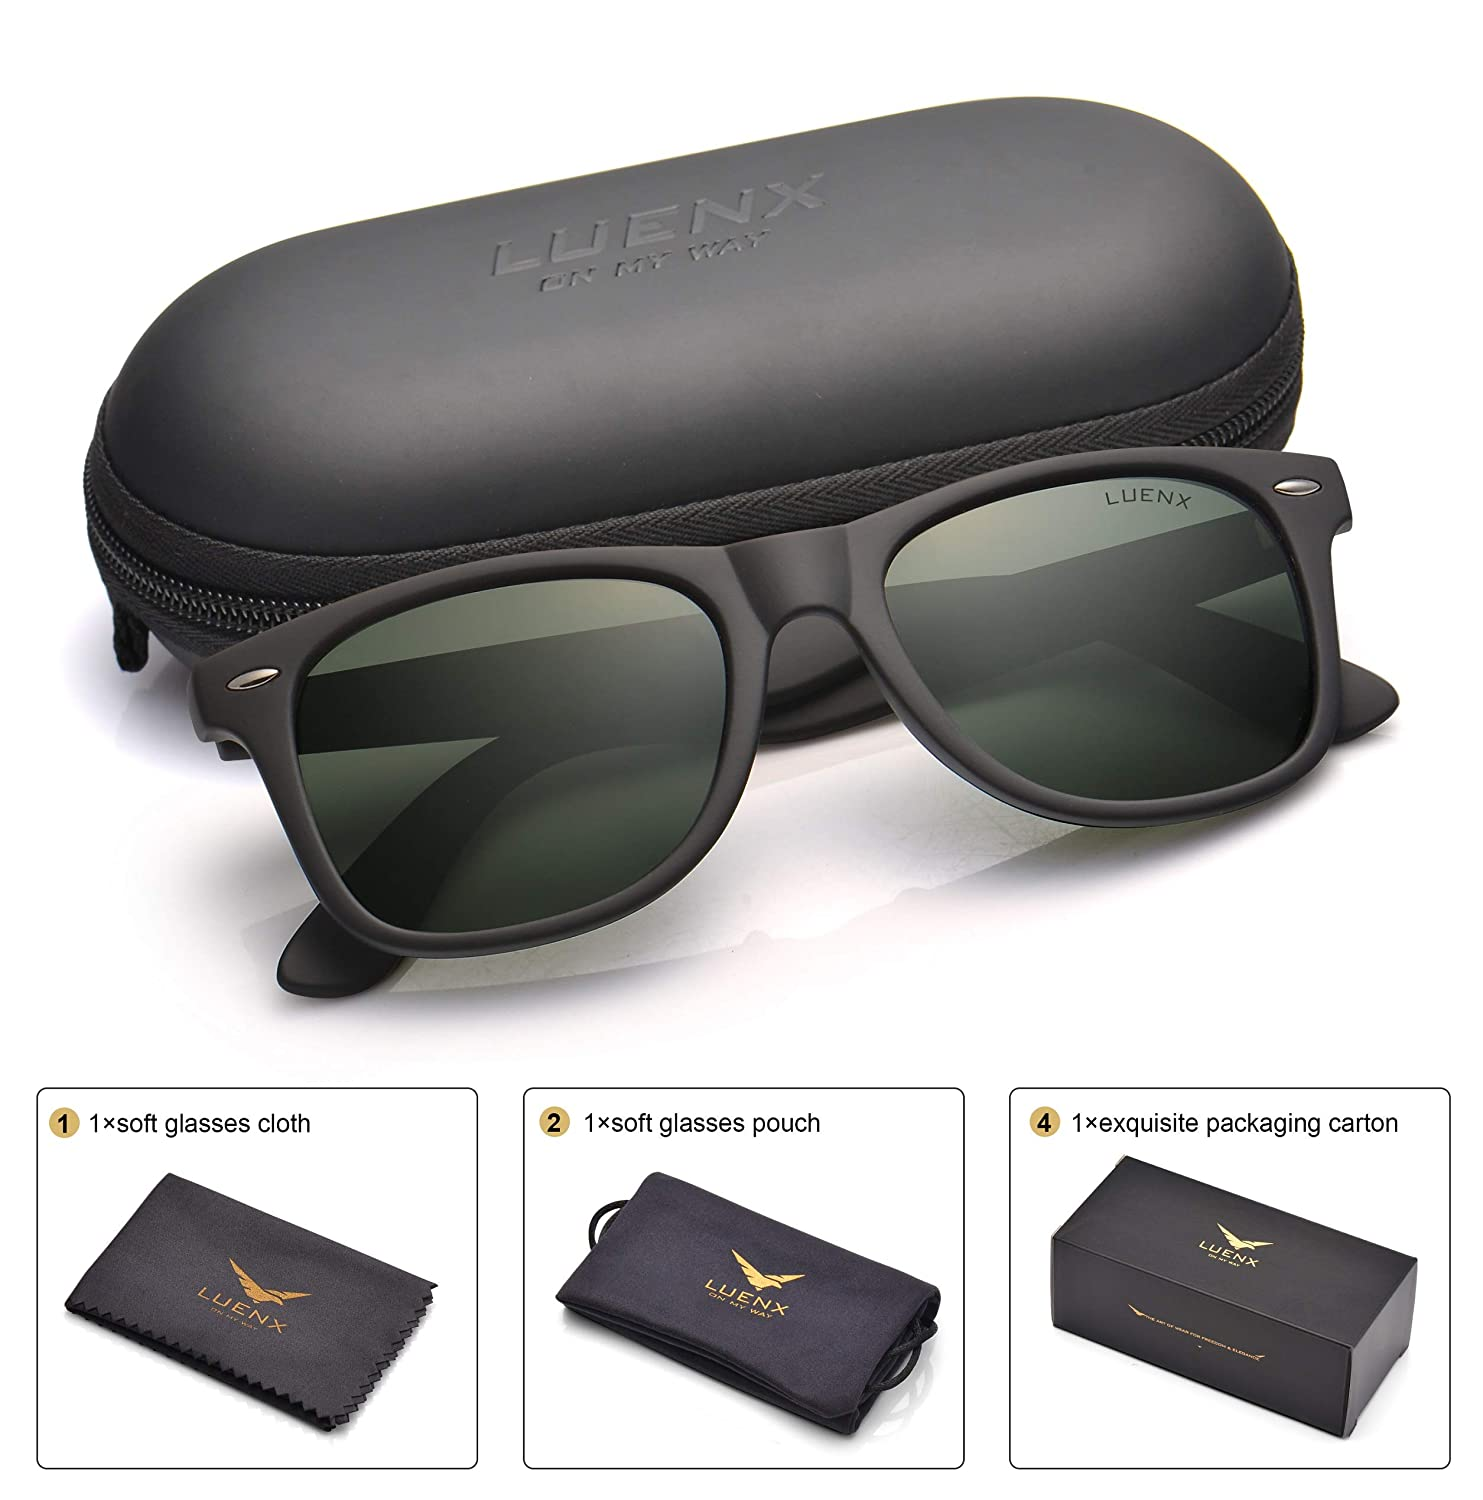 93155214bf73 Mens Polarized Sunglasses for Womens UV 400 Protection Grey Green Lens  Matte Black Frame 54MM  Amazon.ca  Sports   Outdoors